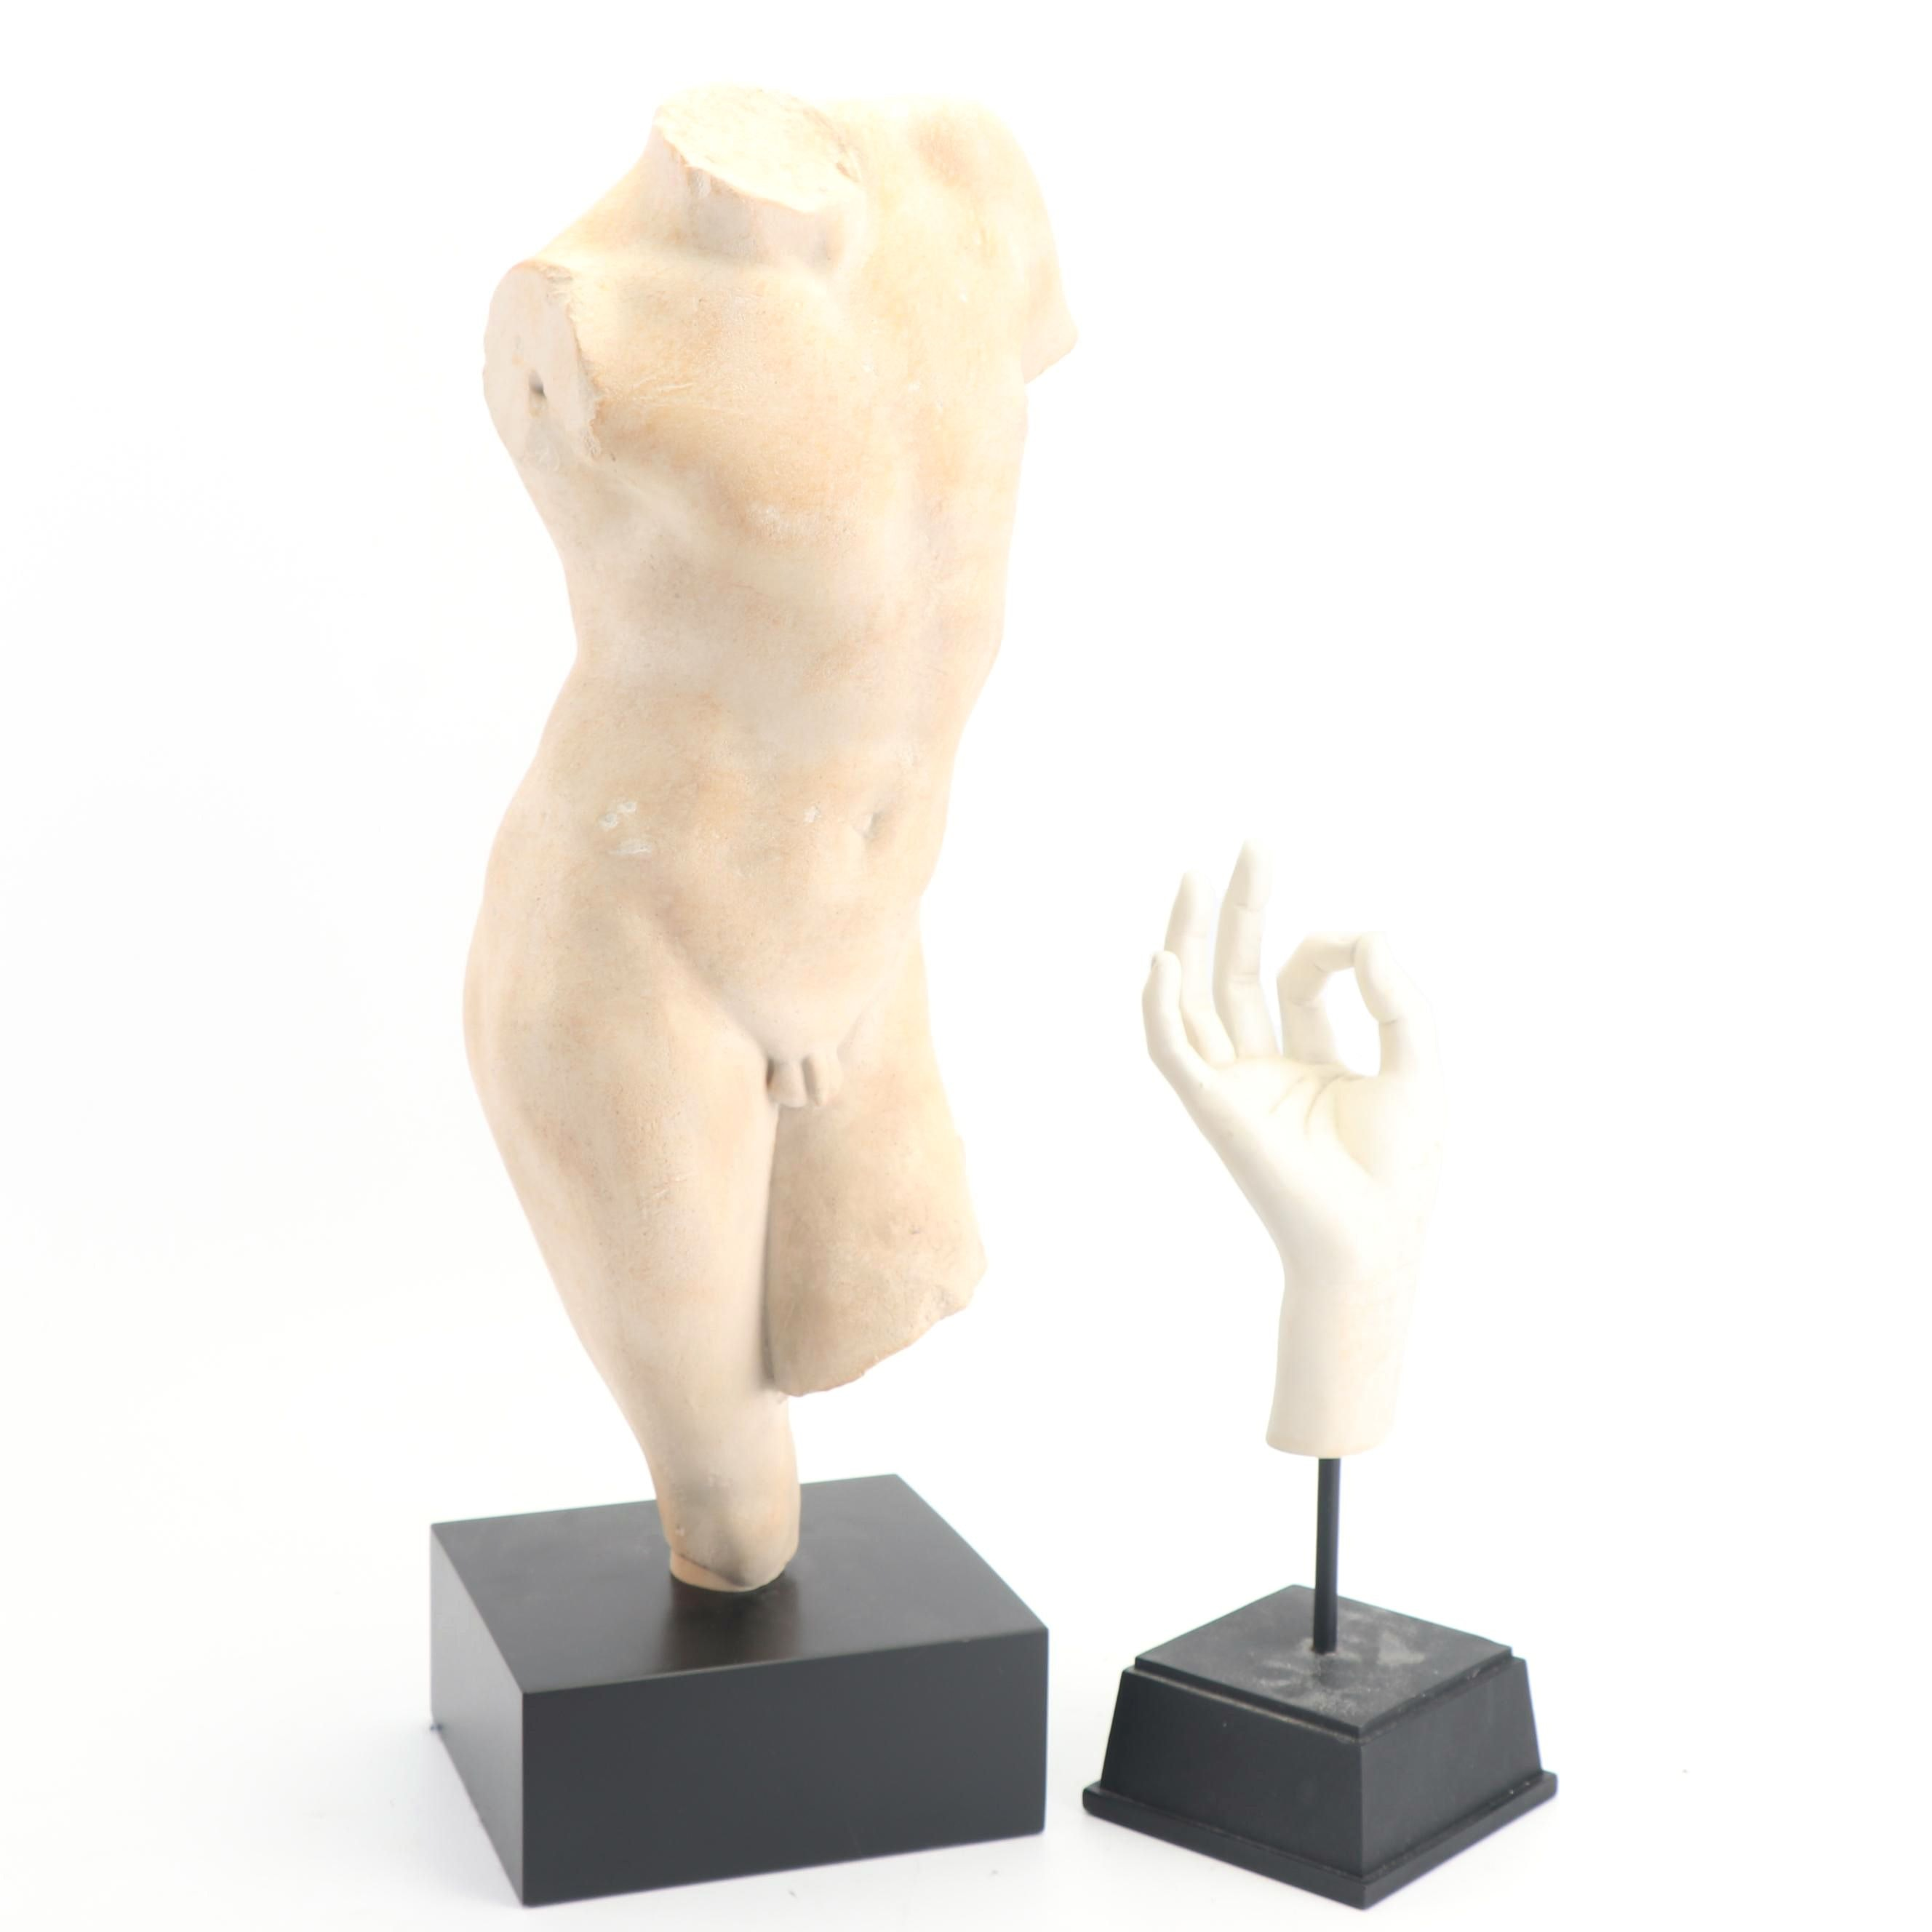 Replica Classical Style Sculpture and Hand Sculpture